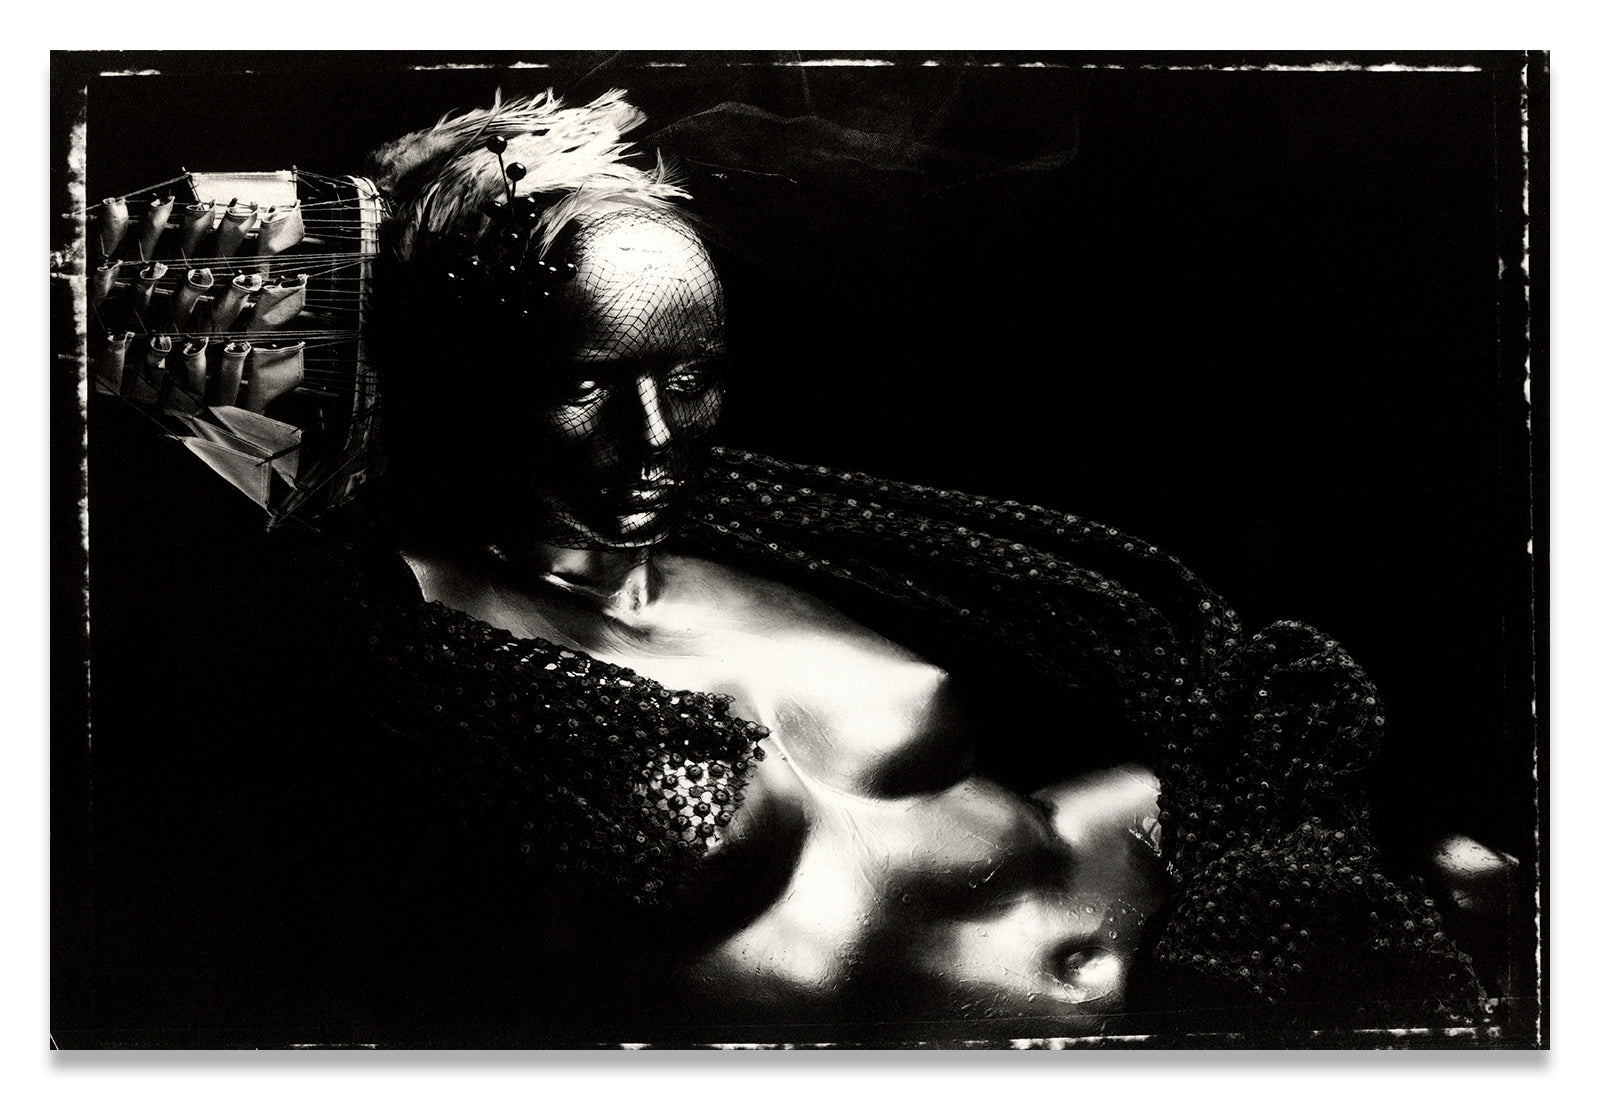 Horizontal Black and White Portrait, on Polaroid 55, of a nude, metallic mannequin torso with a Ship Hat and Feather Headpiece along the side of the Head- Fine Art Print